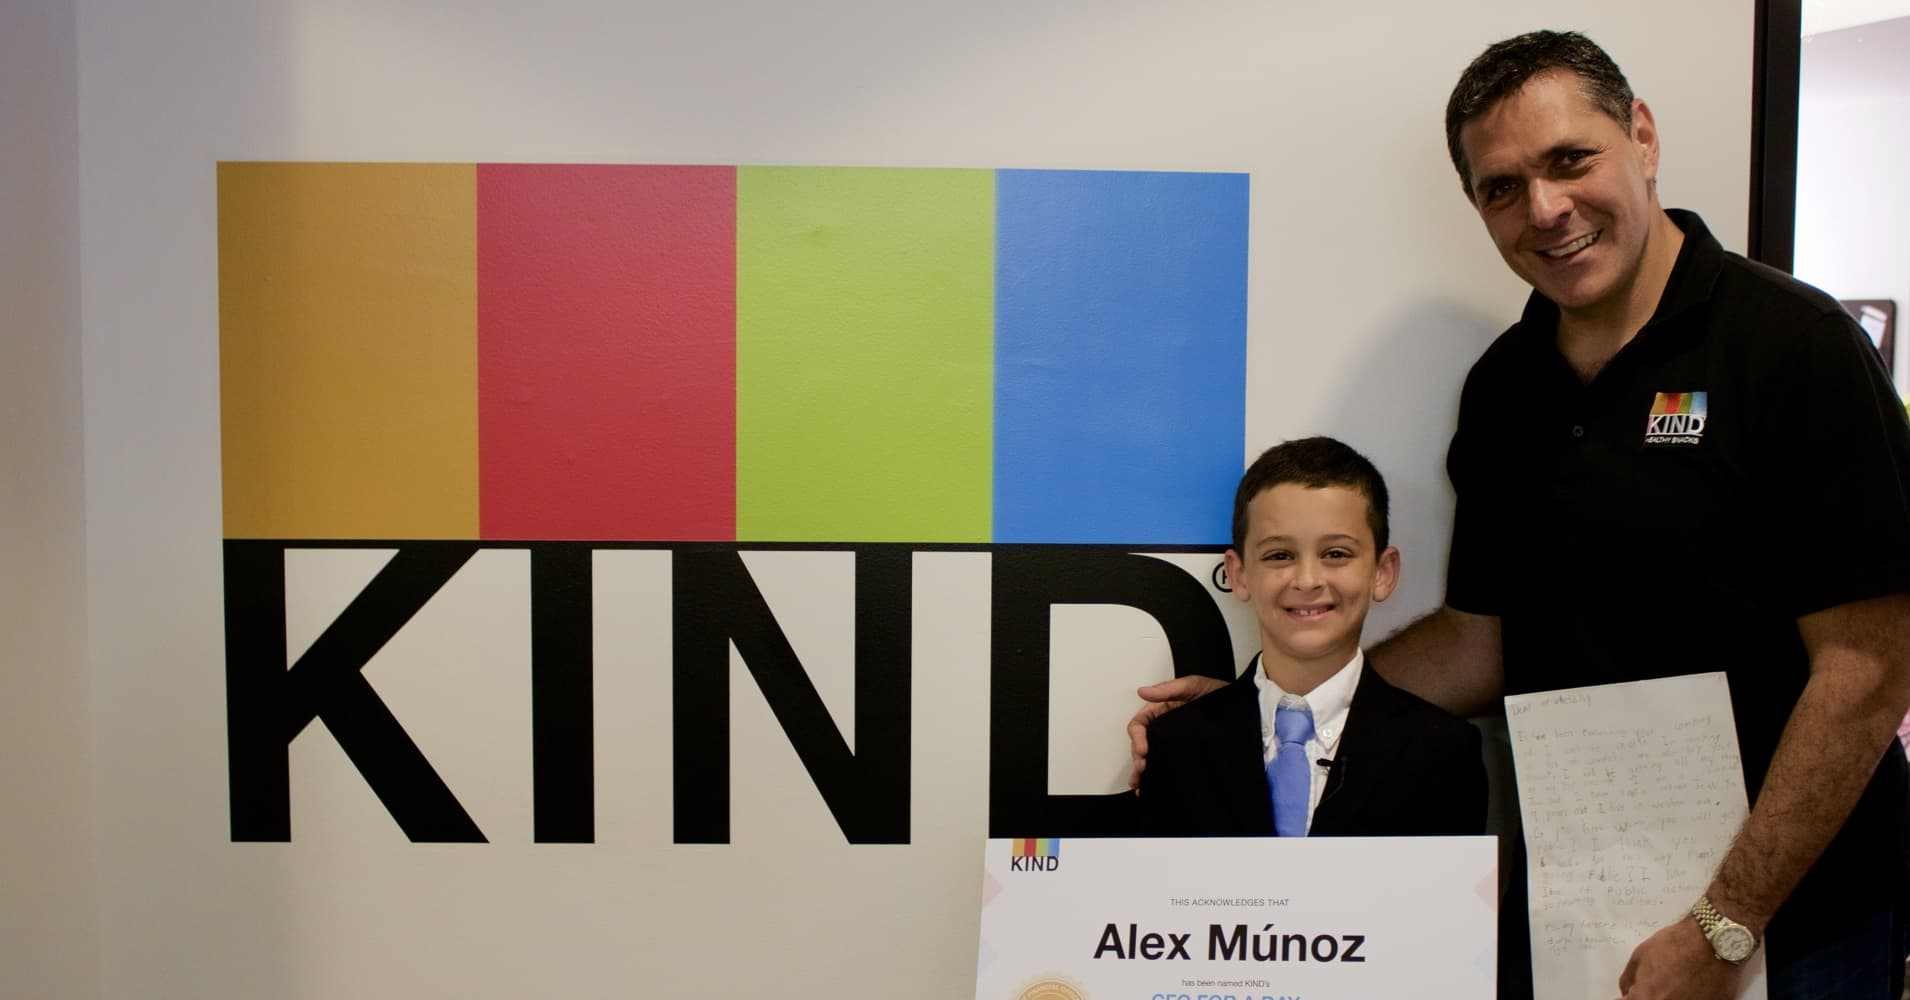 KIND CEO and founder Daniel Lubetzky with Alex Munoz, the 9 year old who wrote him a letter.